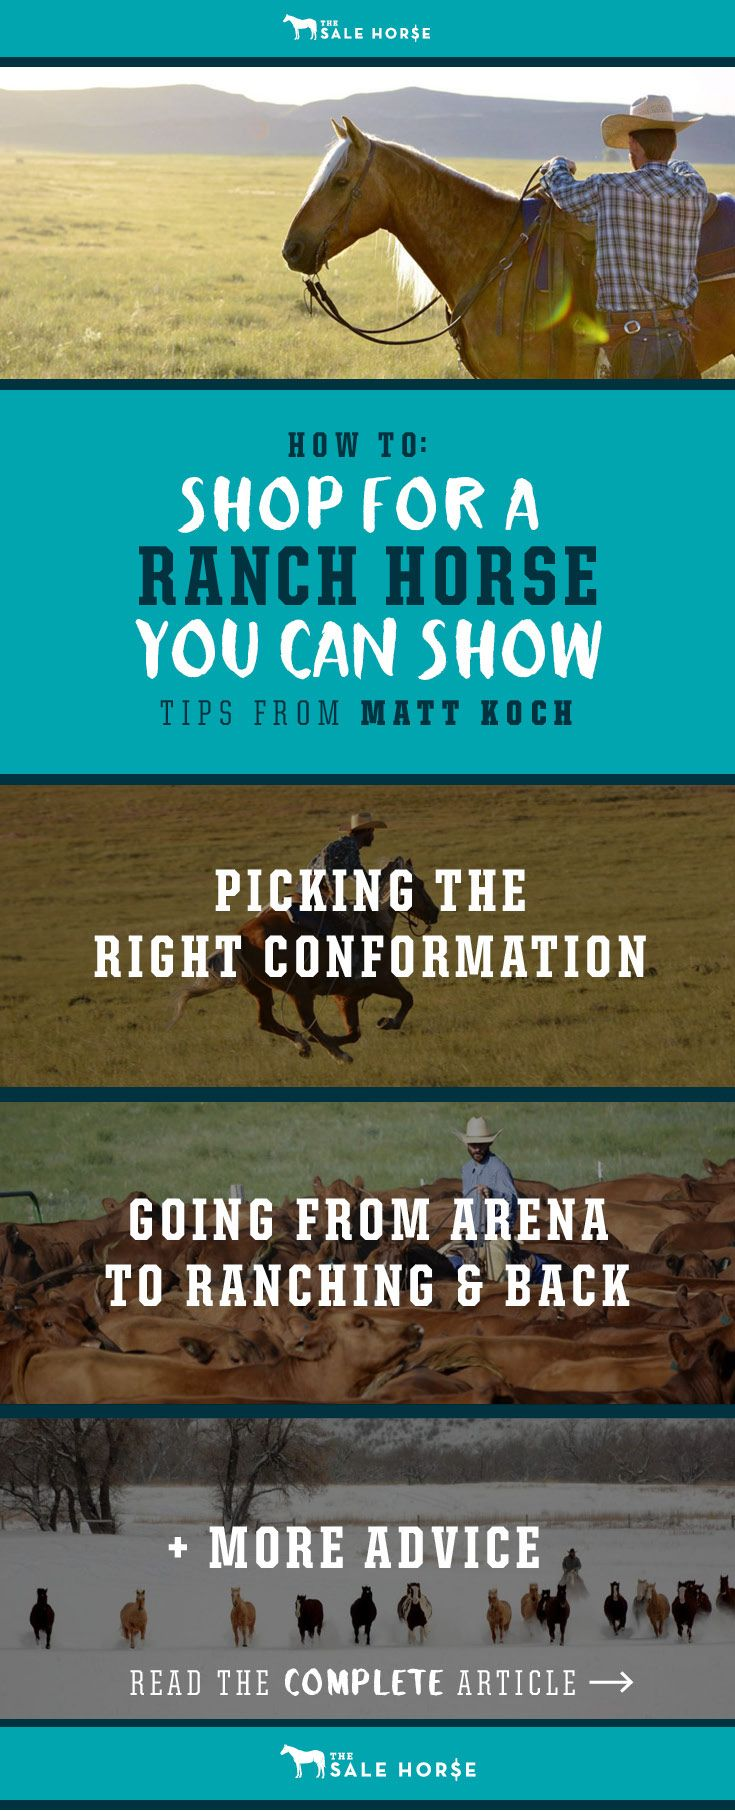 Matt Koch doesn't think the line between ranch horse and show horse needs to be complicated. Some people think a horse has to be either a ranch horse or a show horse, but cowhorse trainer Matt Koch believes in simplifying that divide. The Sale Horse asked Matt how to shop for horses to take us from the show pen to the branding pen.